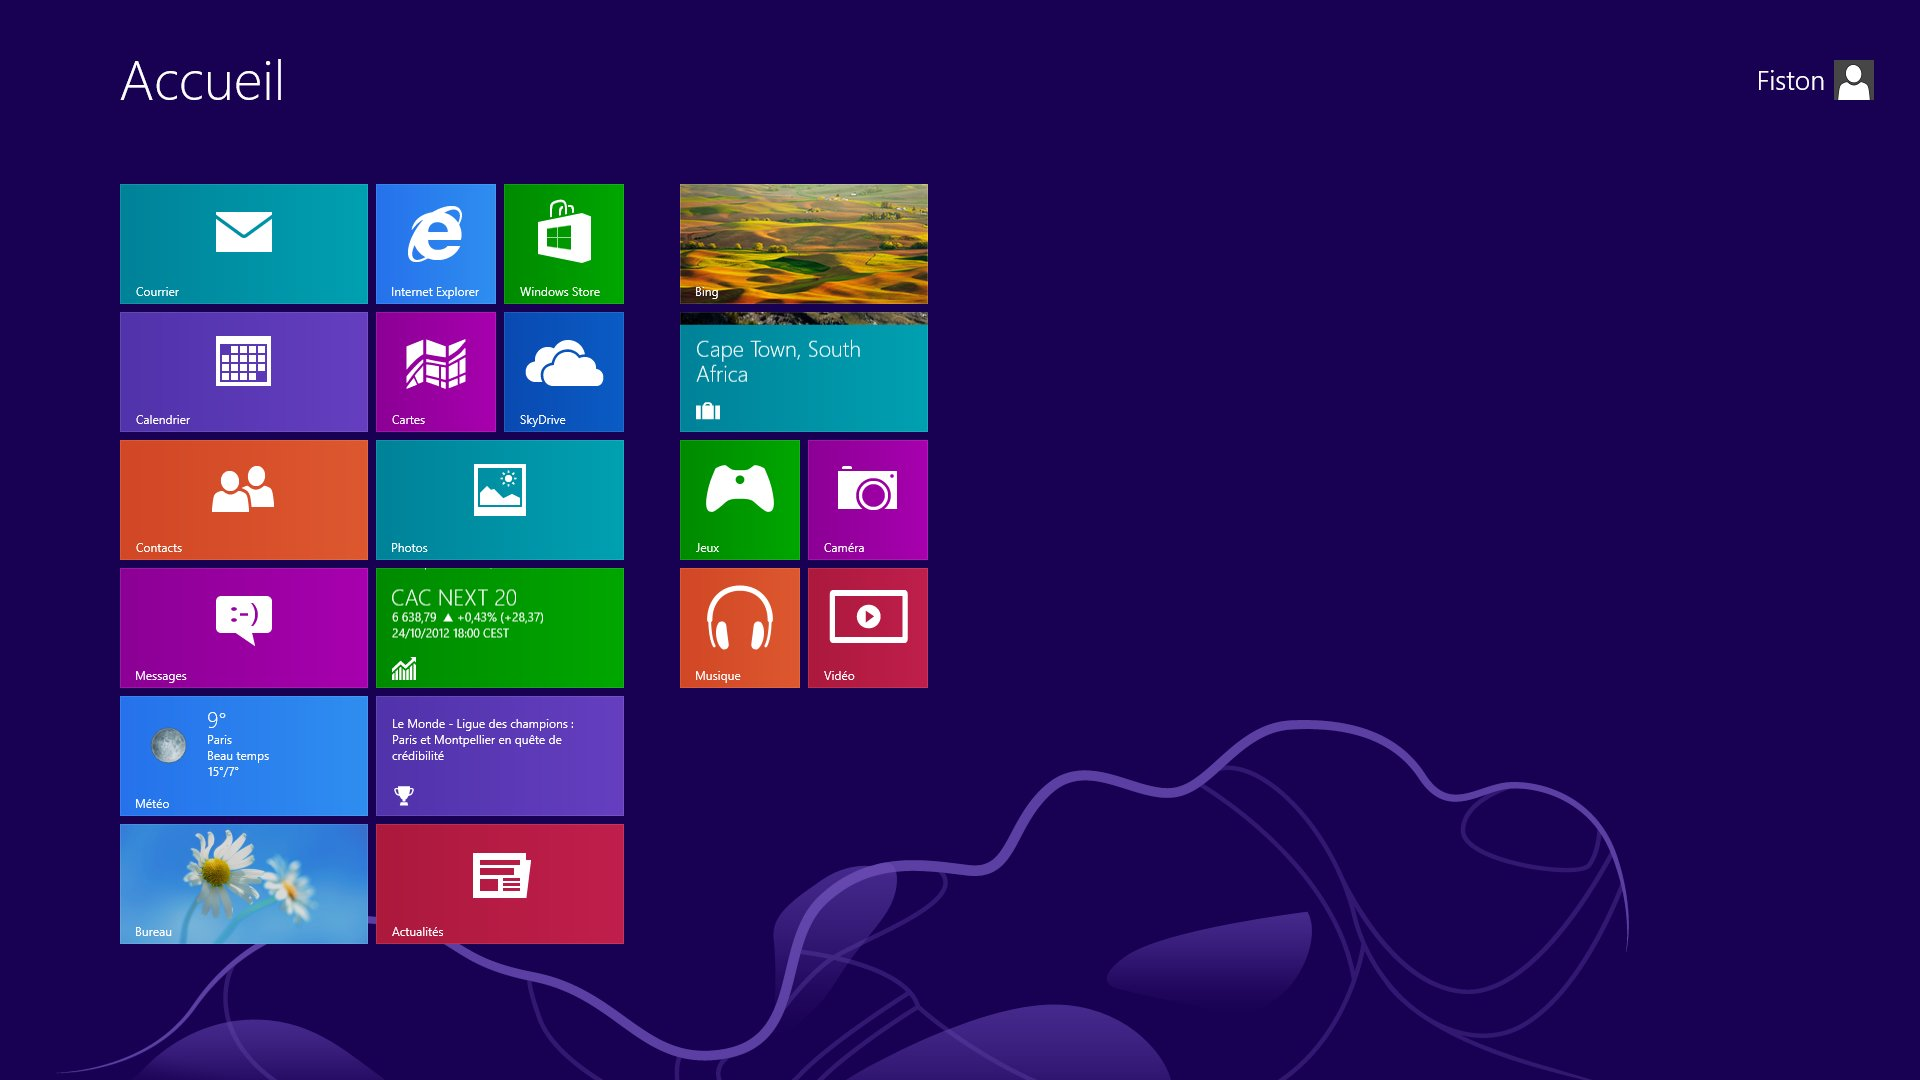 windows 8 ecran accueil.jpg